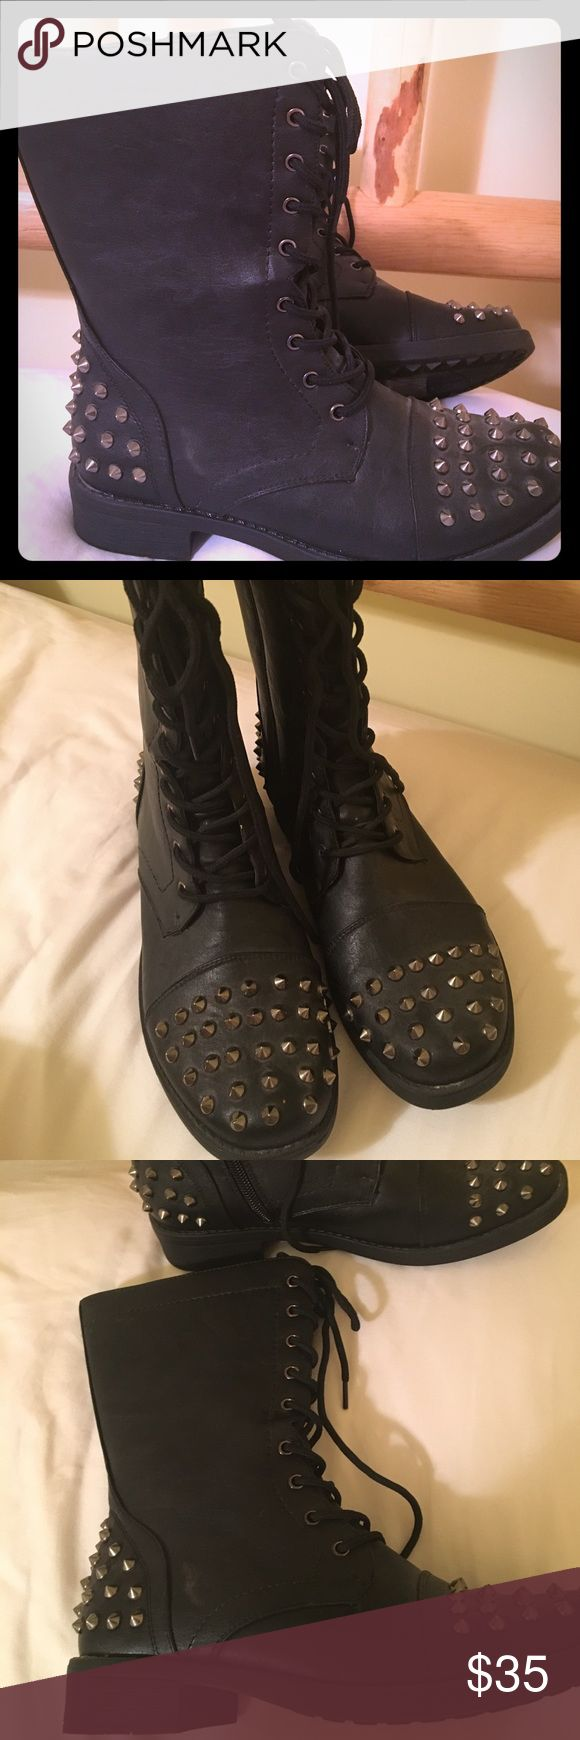 Women's stylish combat boots with spike detailing Very cute! Women's combat boots with unique spike detailing. New! Forever Shoes Combat & Moto Boots